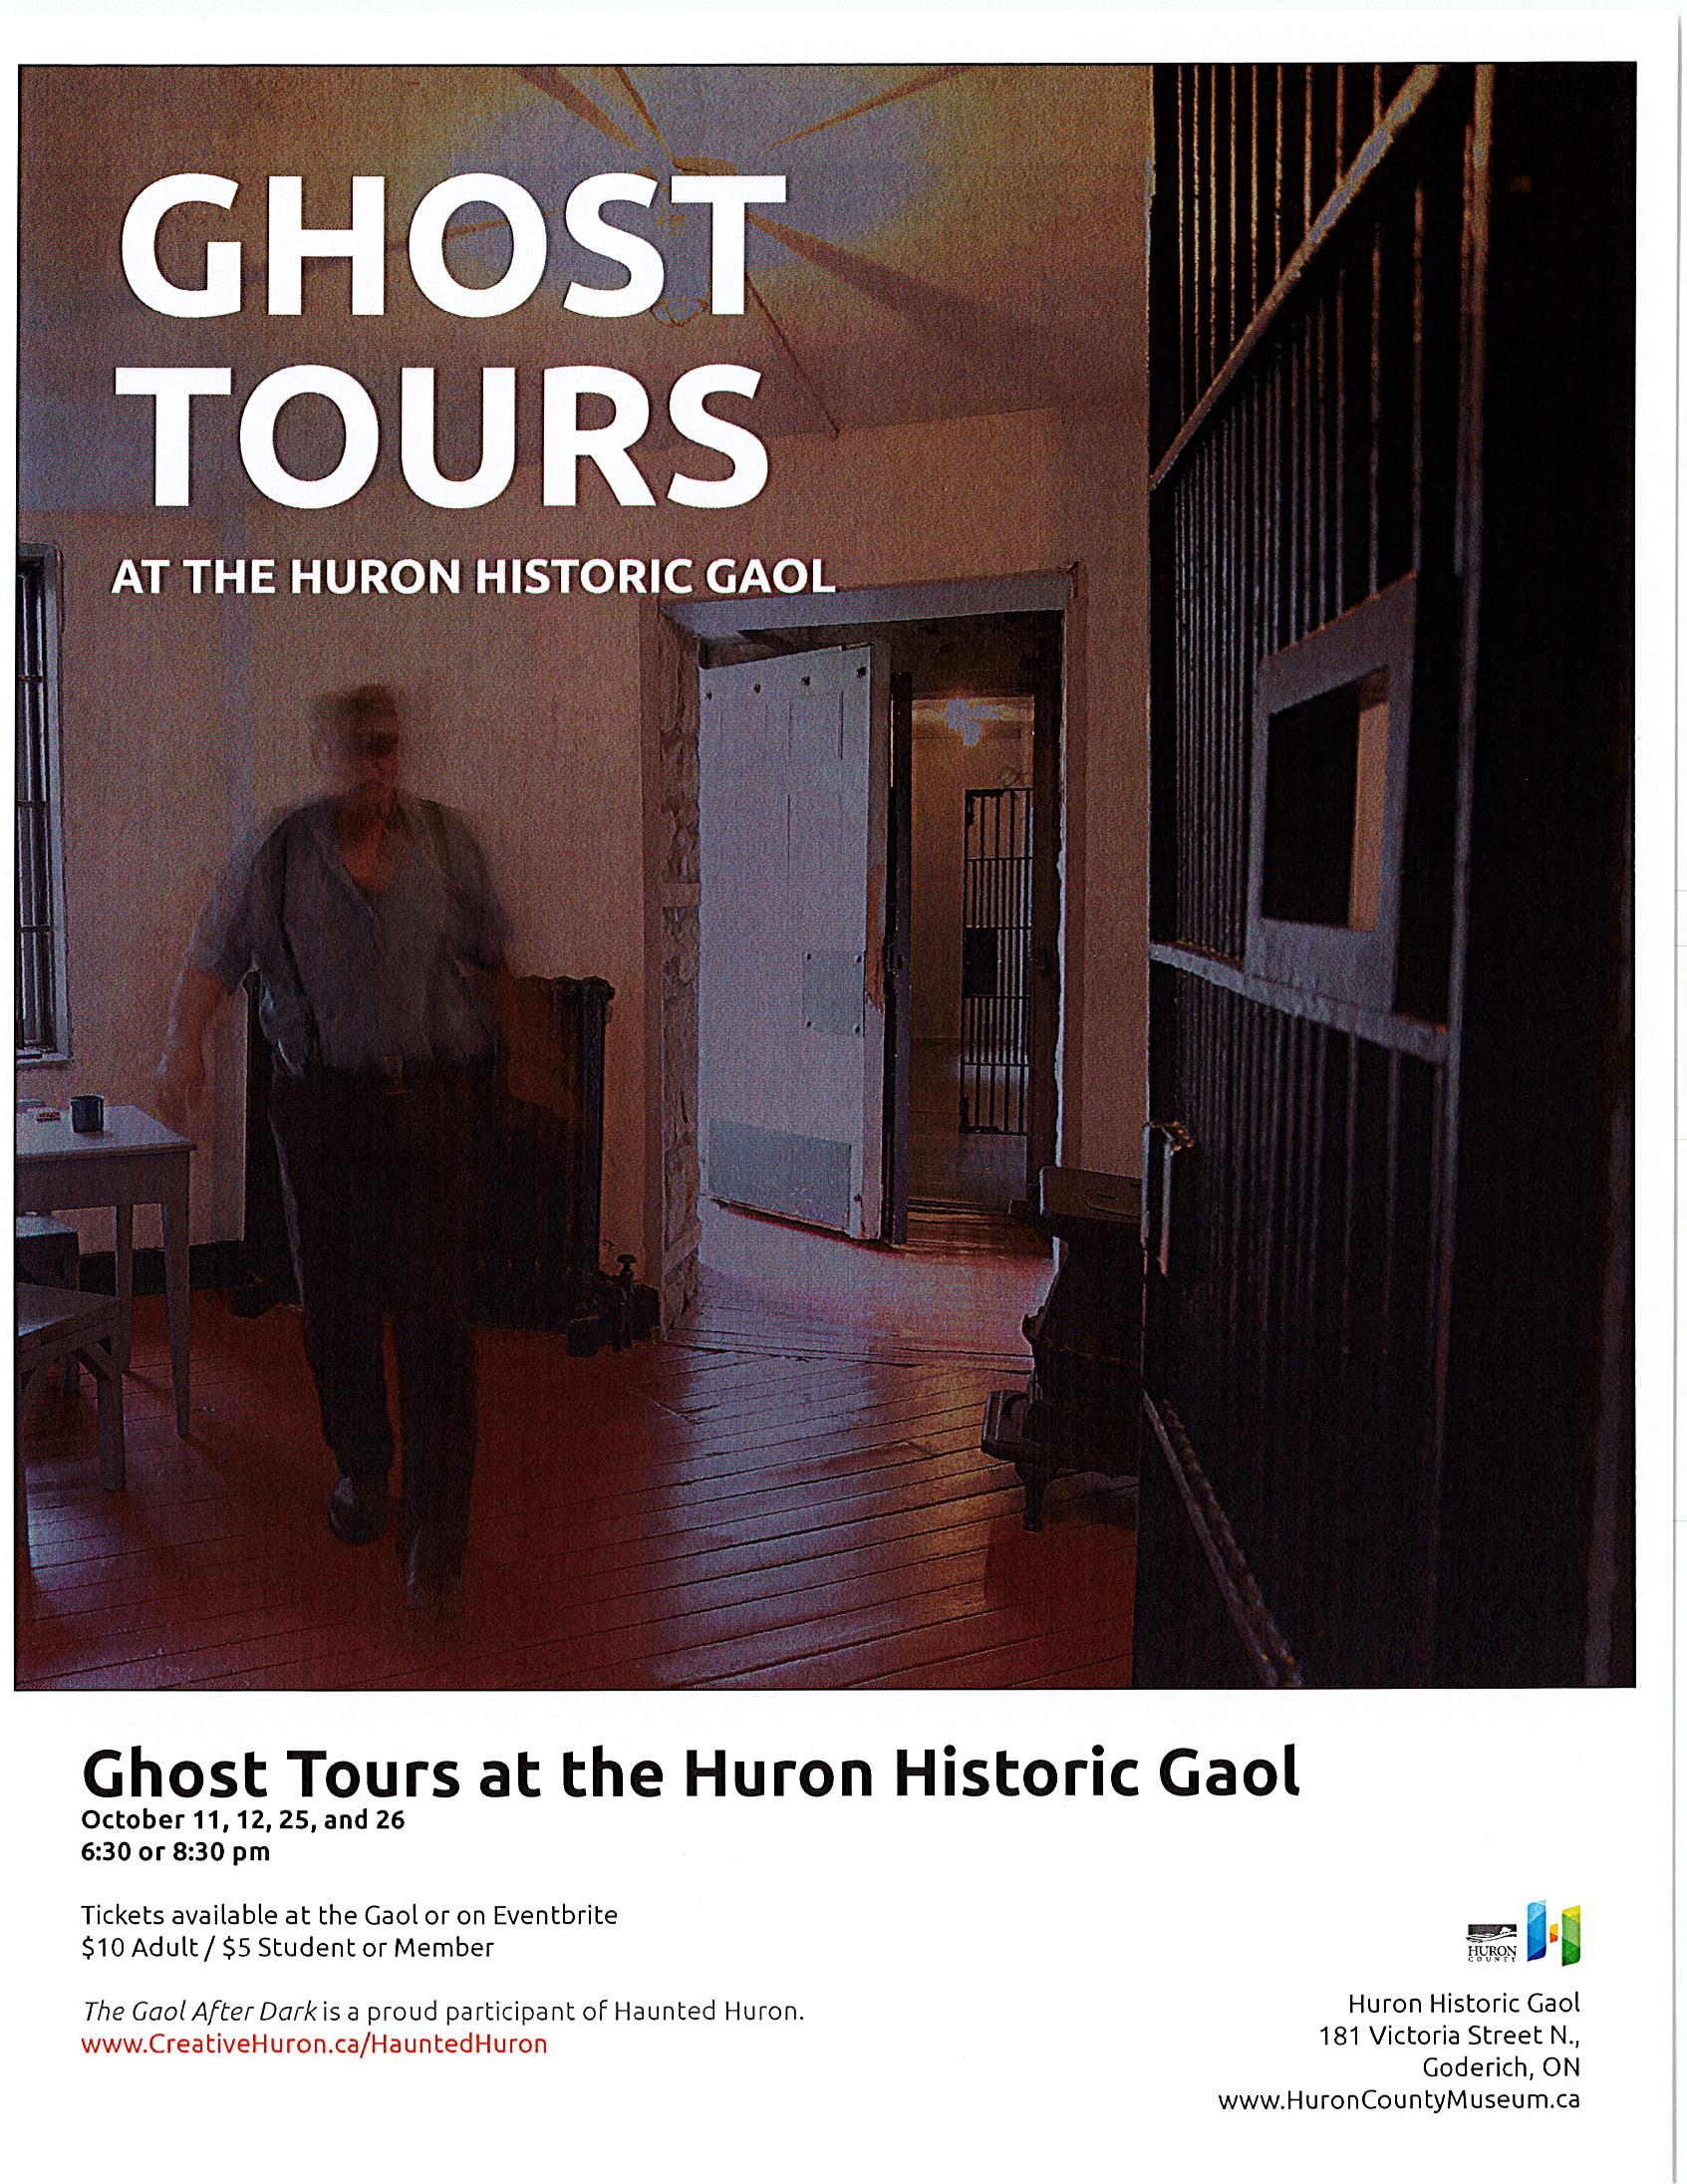 Ghost Tours at the Huron Historic Gaol